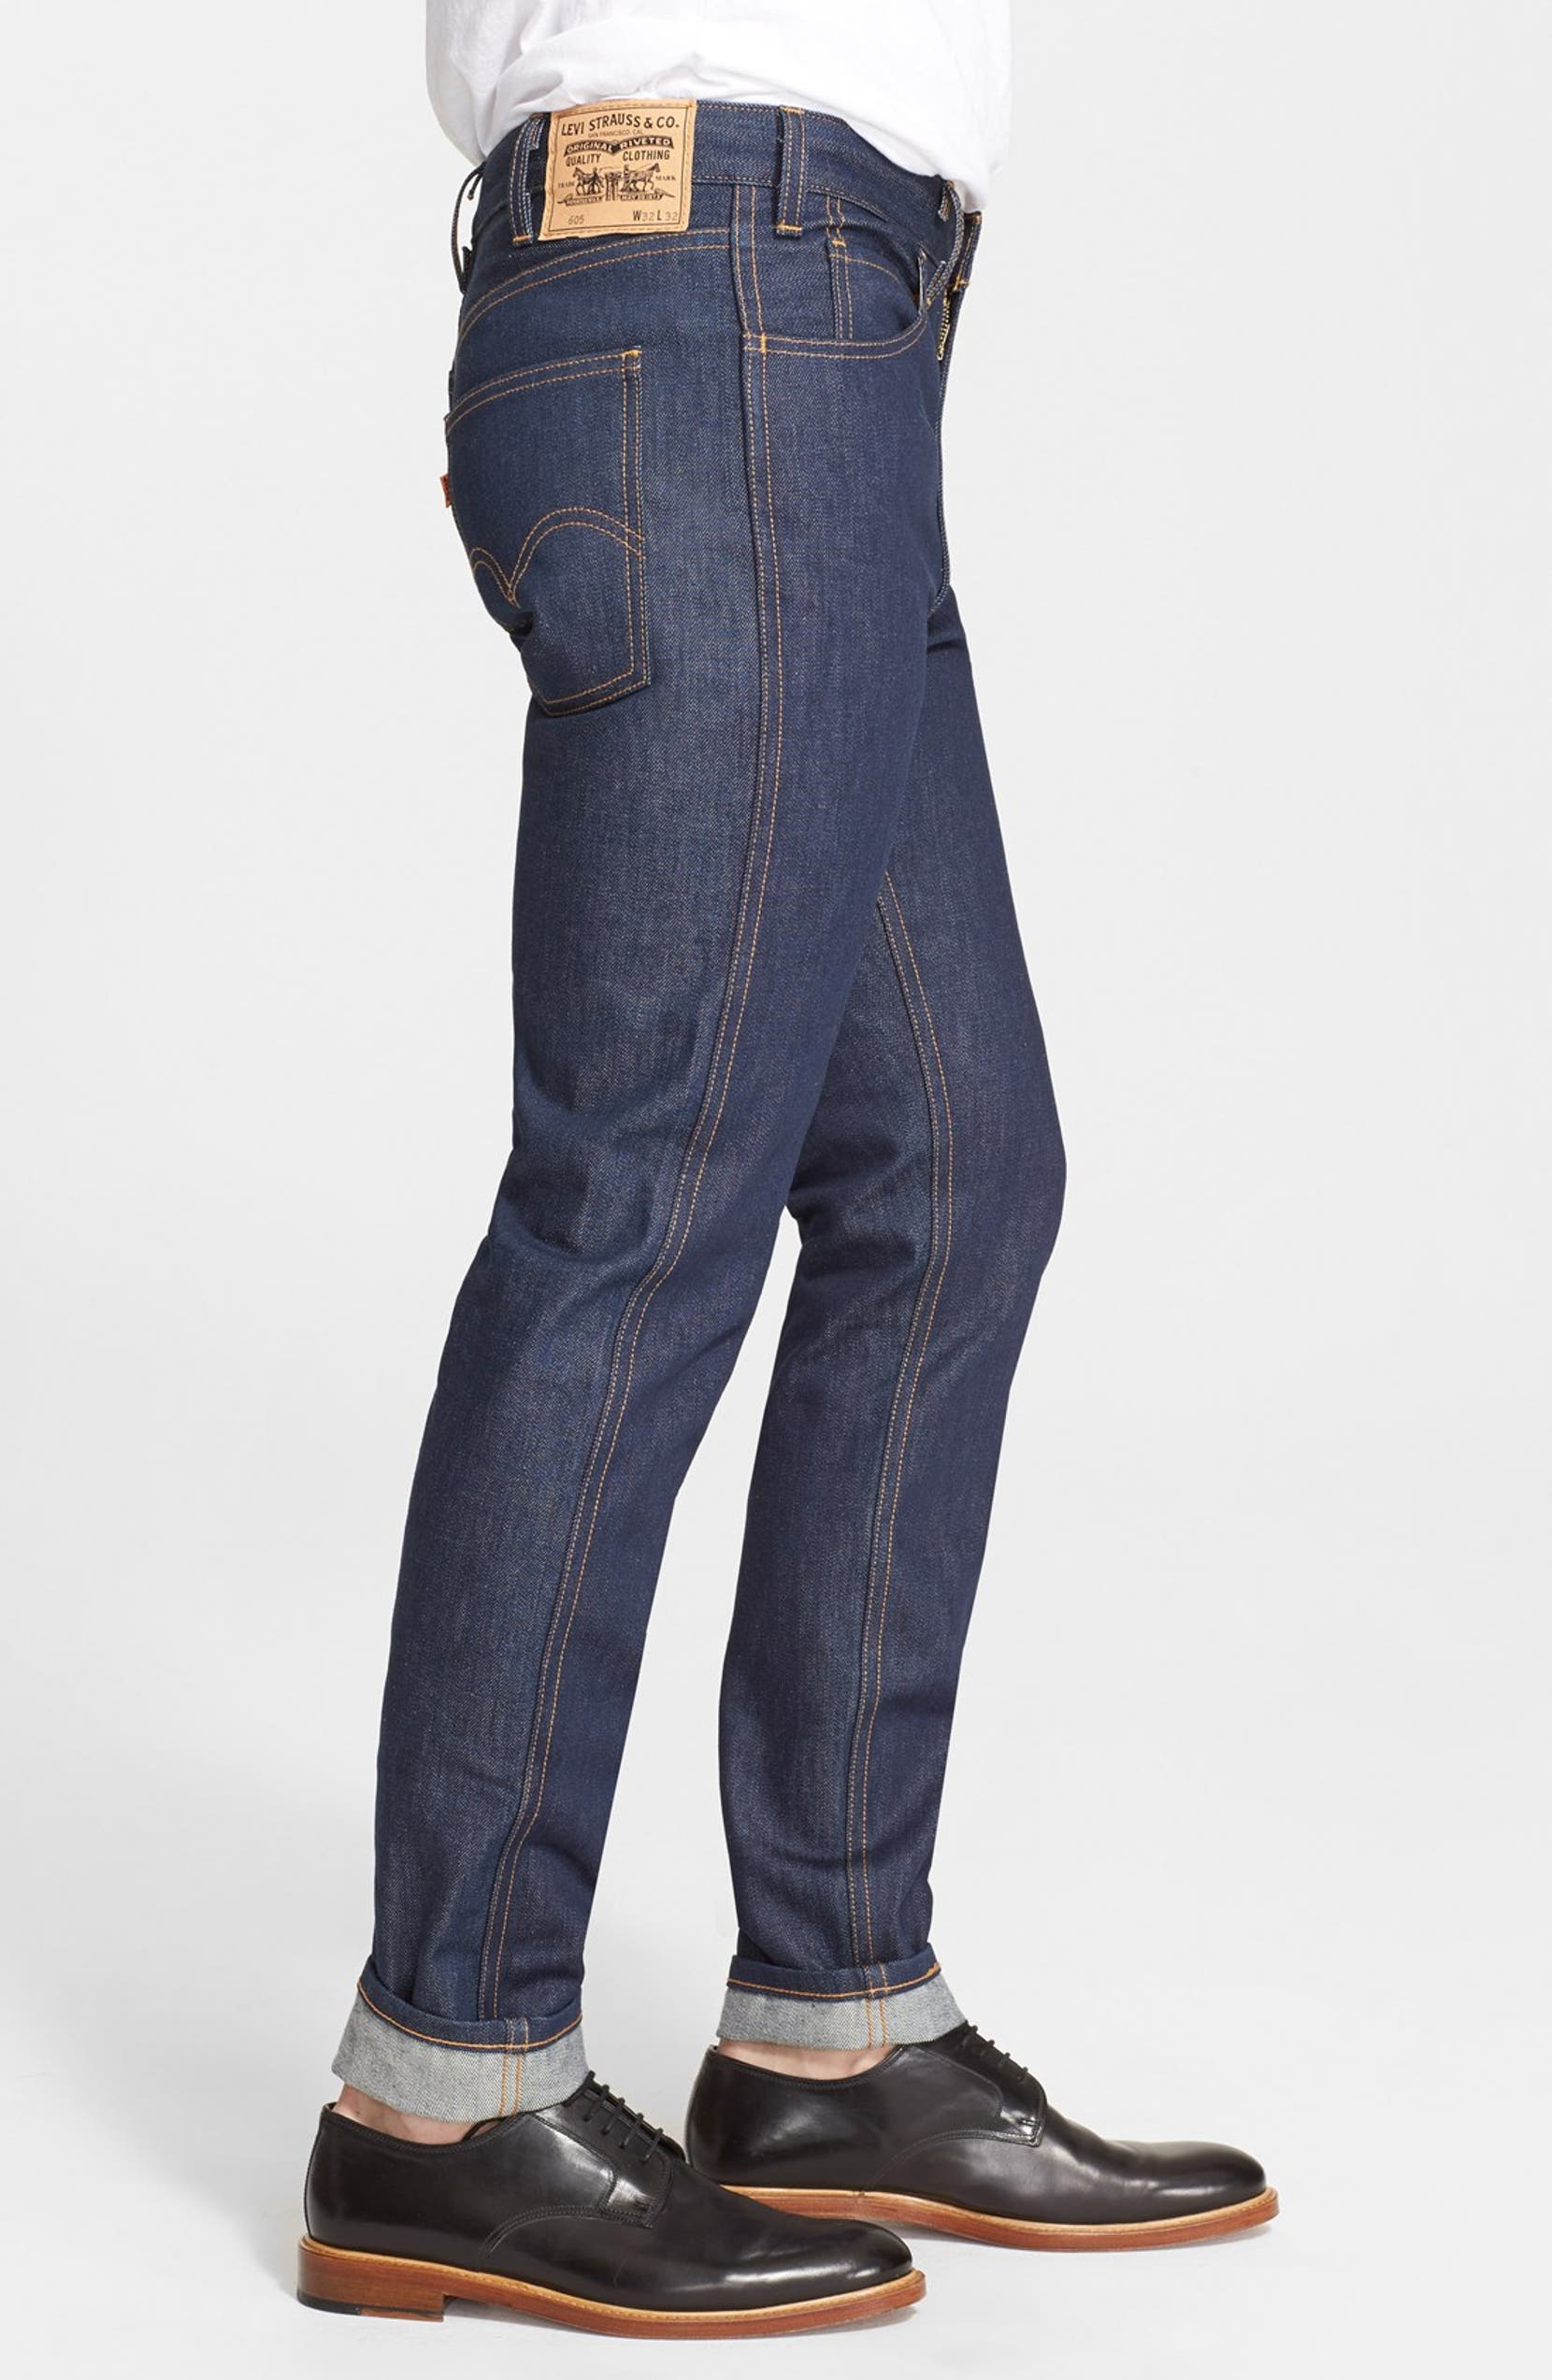 79d03c5ef1e Levi's® Vintage Clothing '1969 606®' Slim Fit Tapered Leg Jeans (Rigid  Indigo) | Nordstrom